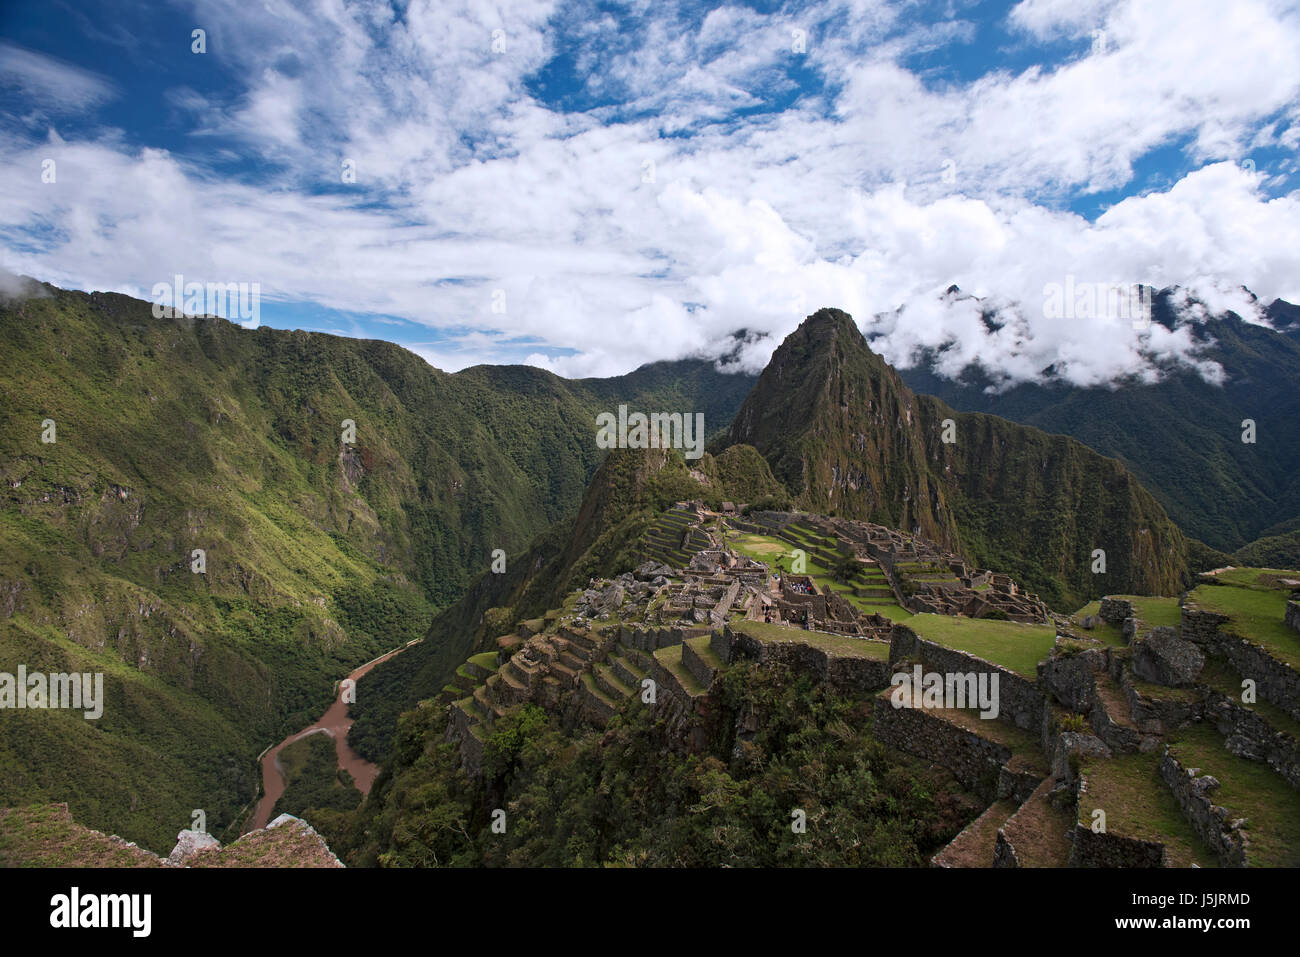 The ruins of Machu Picchu, Peru - Stock Image